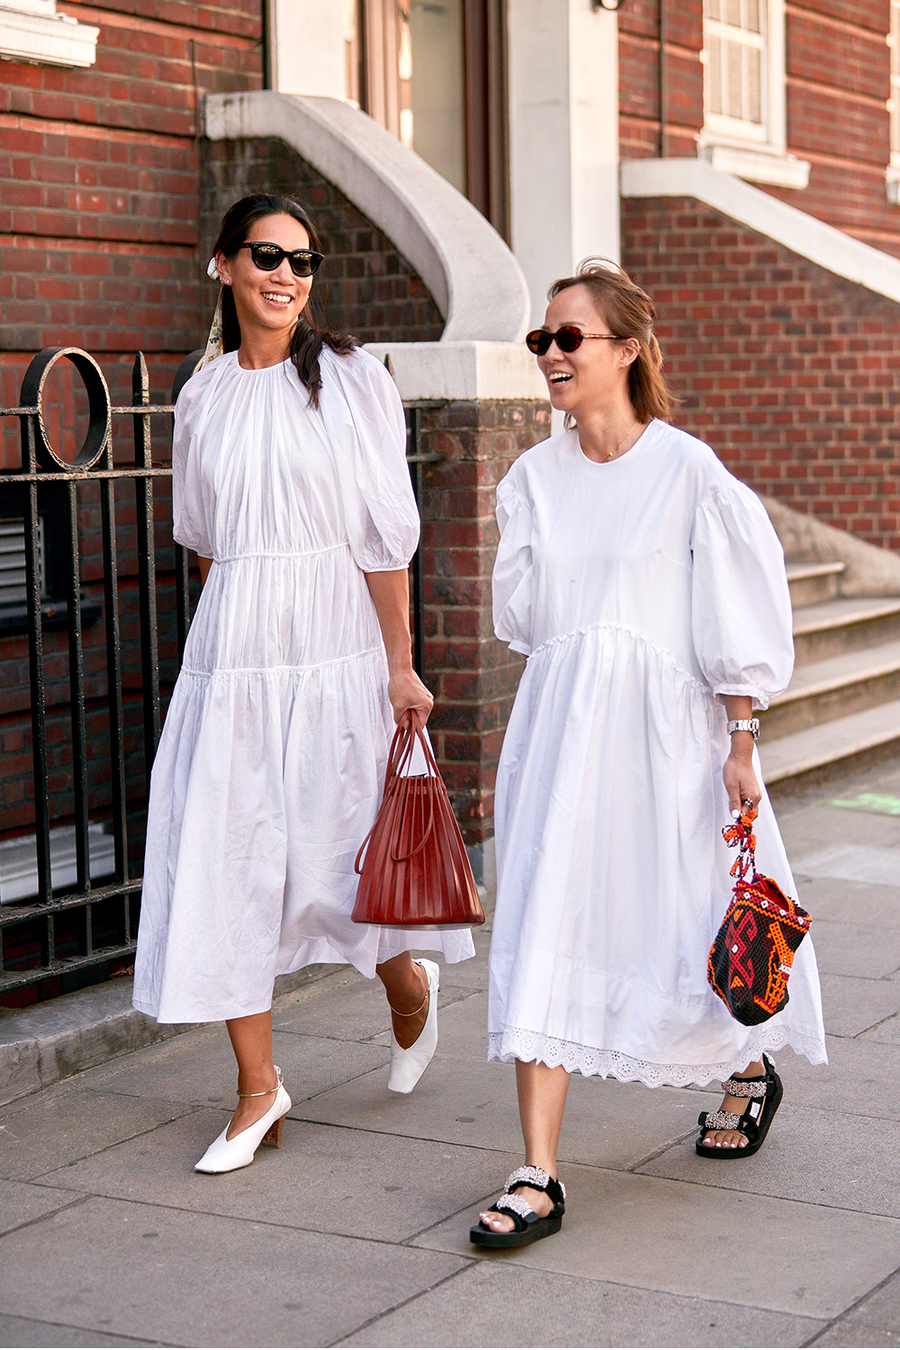 25 Voluminous White Dresses for Spring and Summer — Street style outfit ideas with puffed sleeves and billowy skirt, mini bag, and sandals